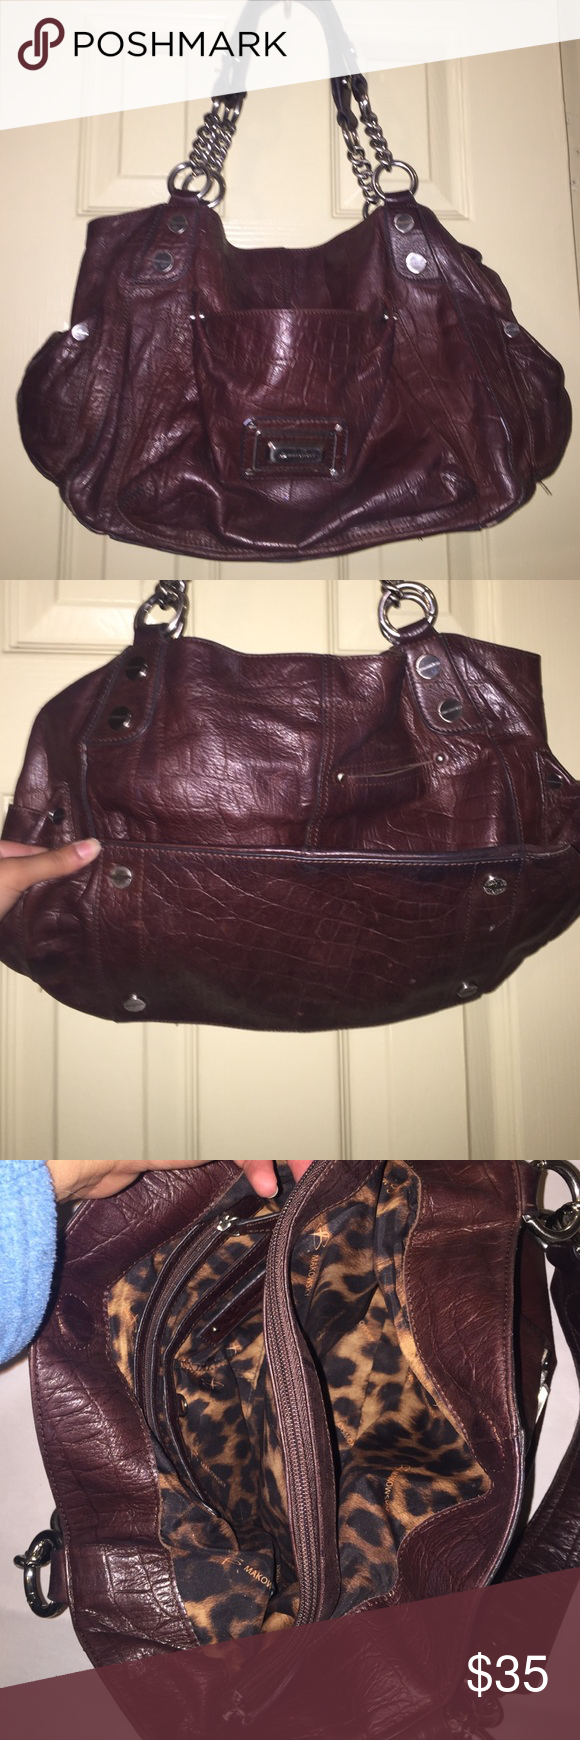 B.MAKOWSKY LEATHER PURSE In good condition, all leather, has side pockets and a front pocket, 3 divisions inside, has that small white paint on the handle and a bit in the corner. Please carefully review each photo before you purchase. Since this is the best description for the item. b. makowsky Bags